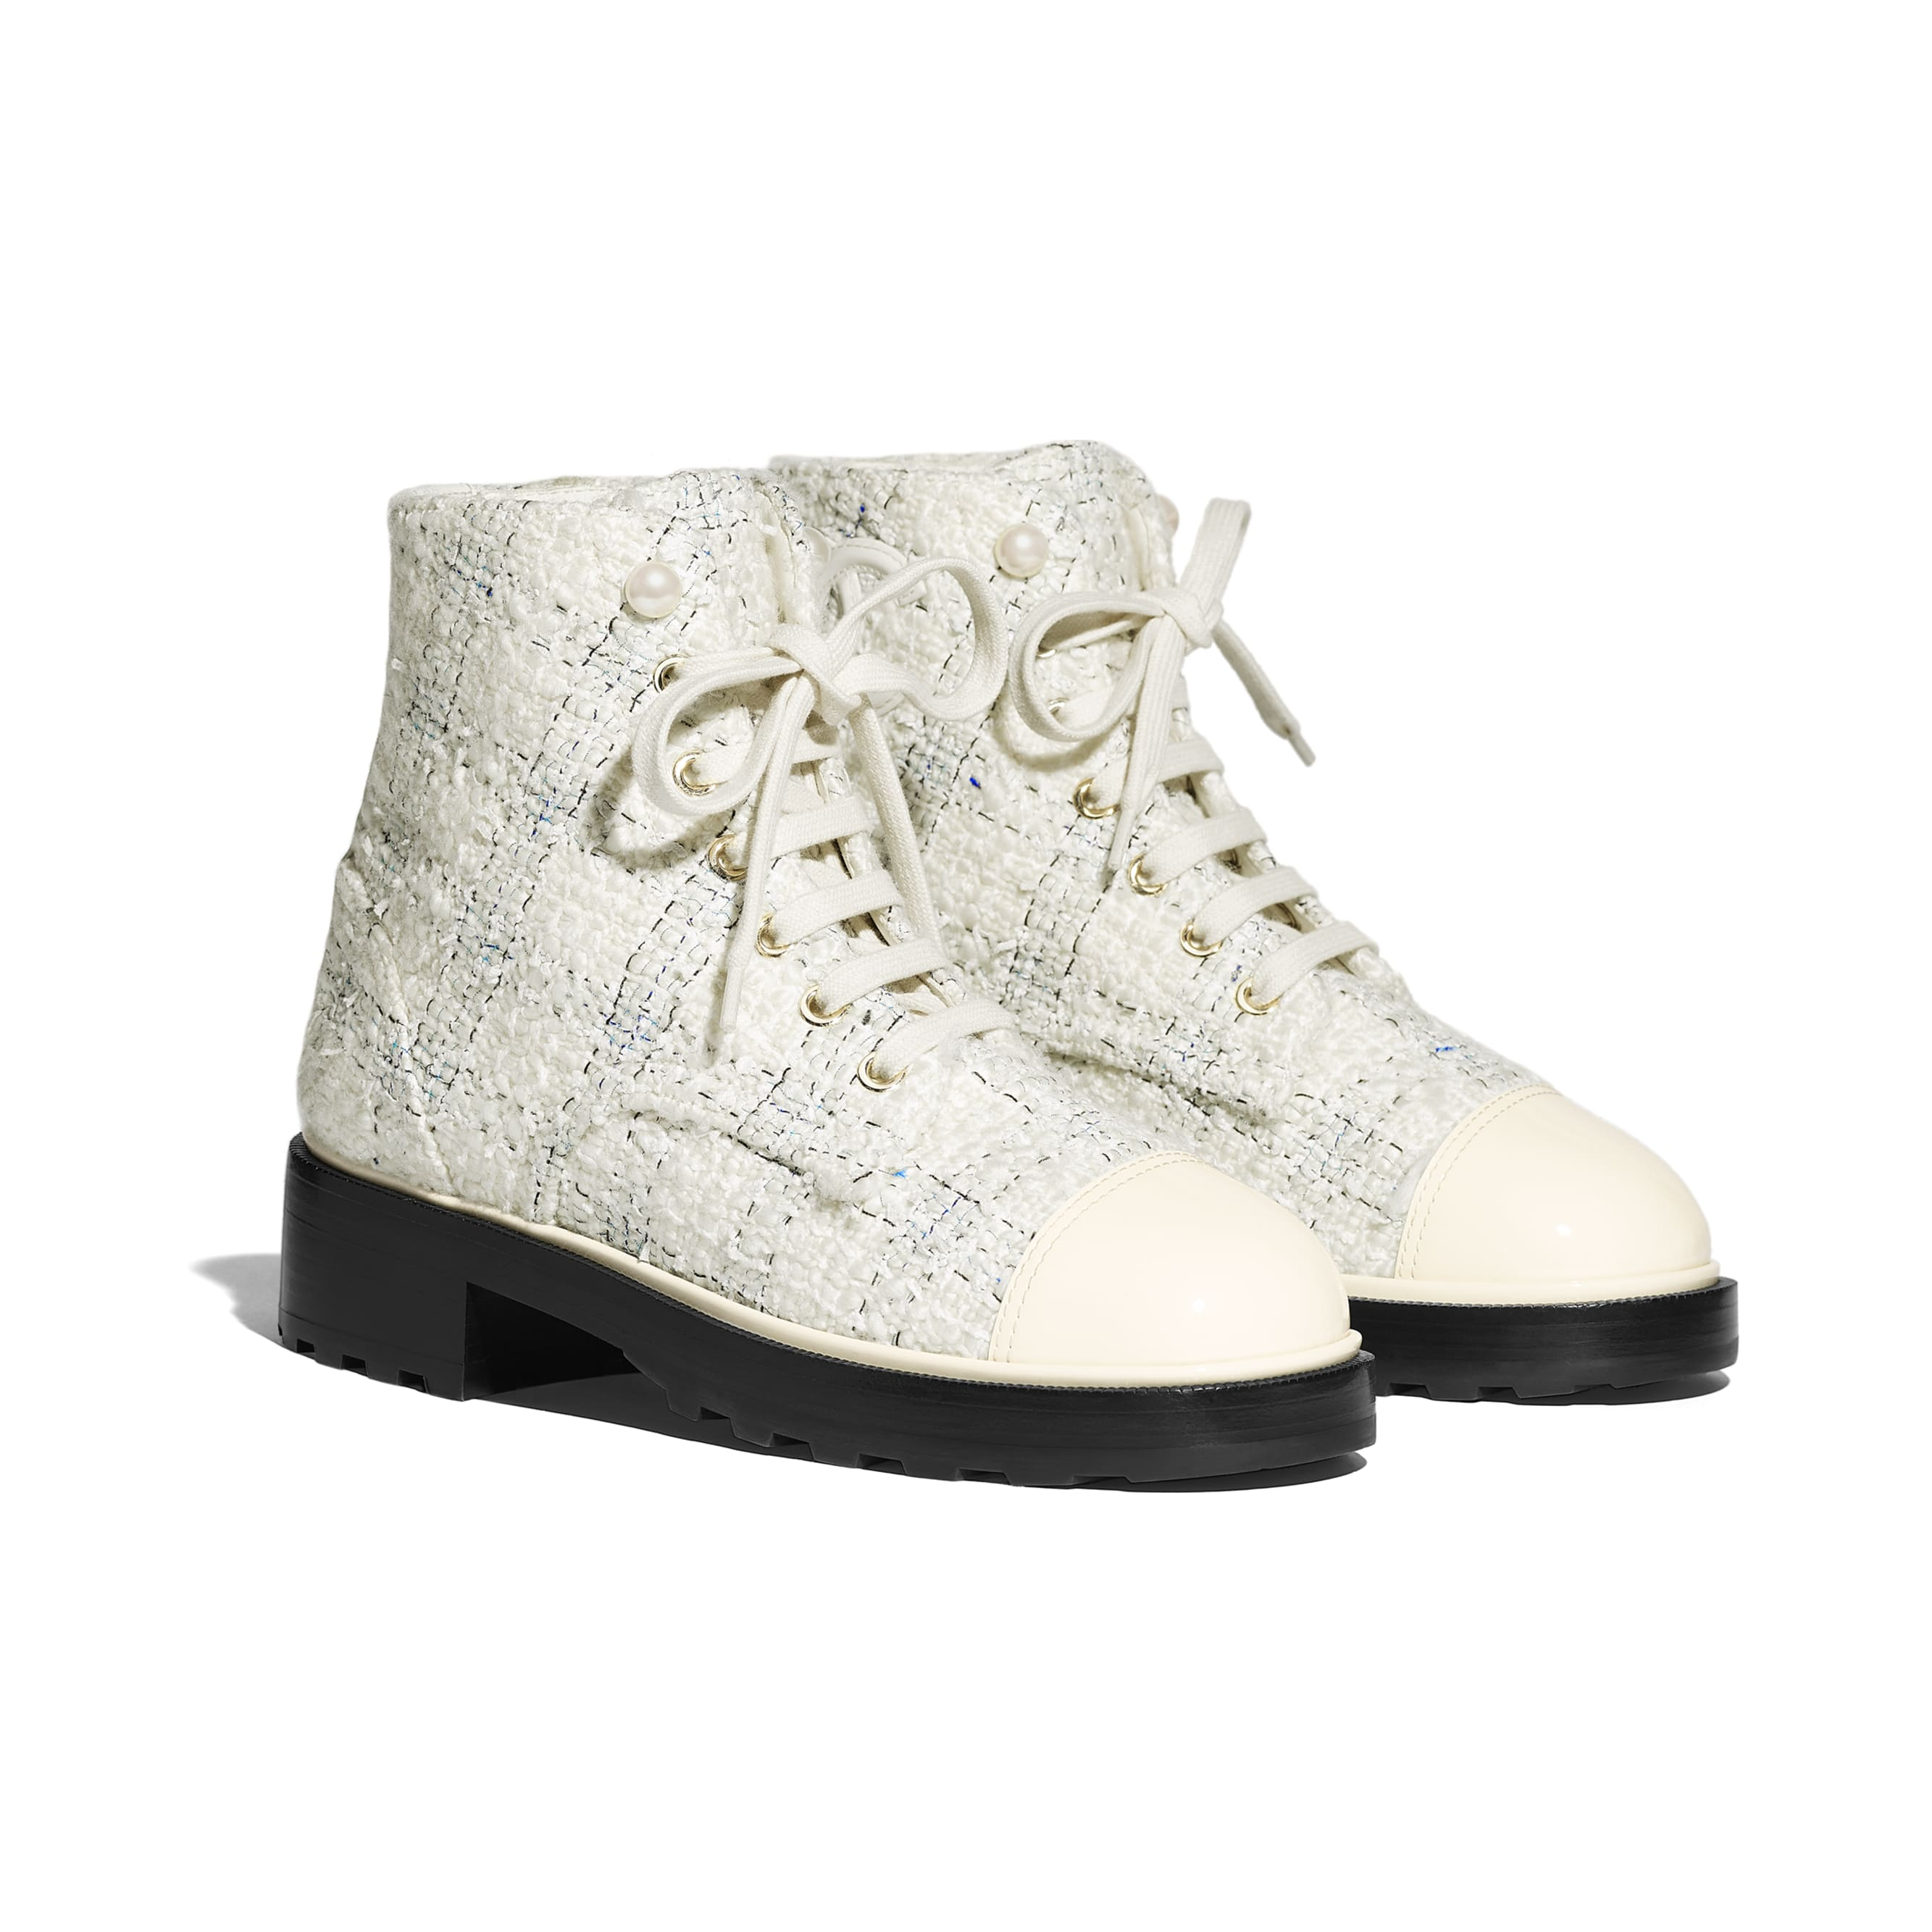 Ankle Boots - White & Black - Tweed & Calfskin - Alternative view - see standard sized version